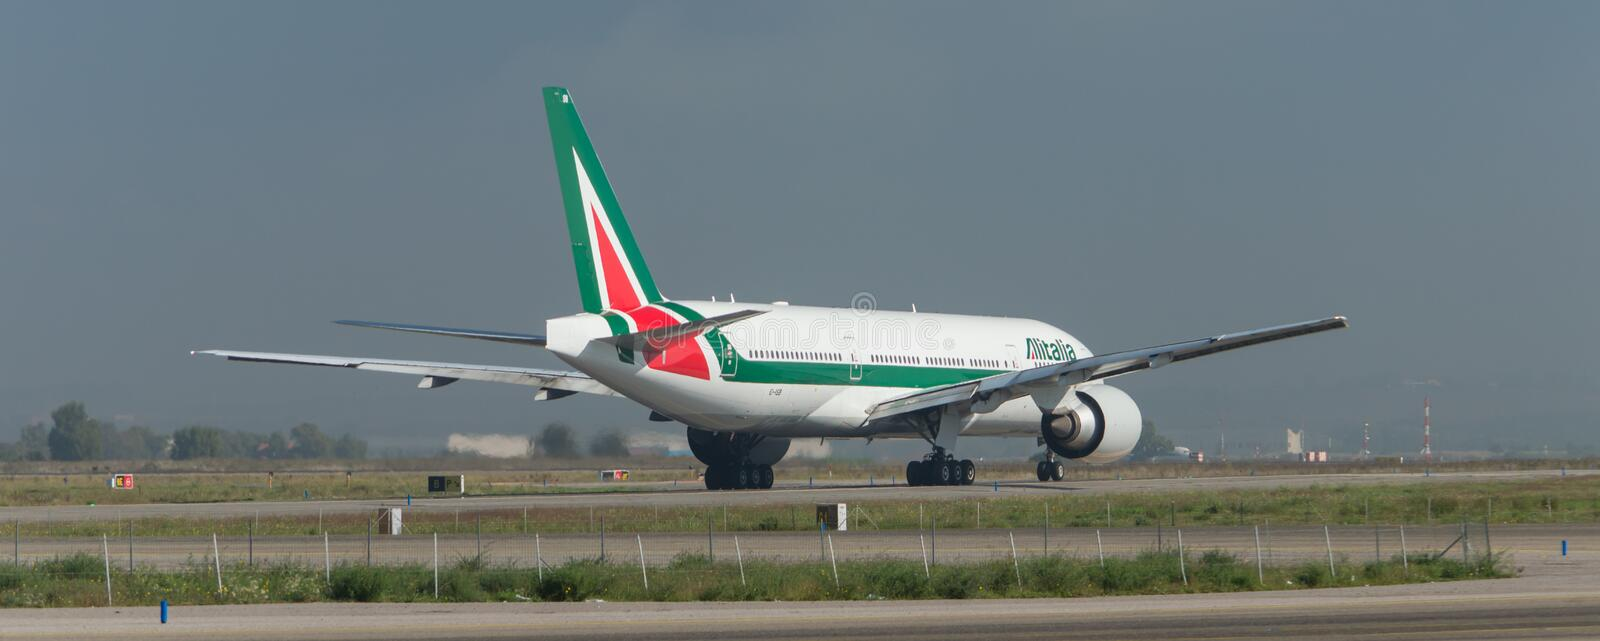 Alitalia Boeing 777 on the runway royalty free stock photo